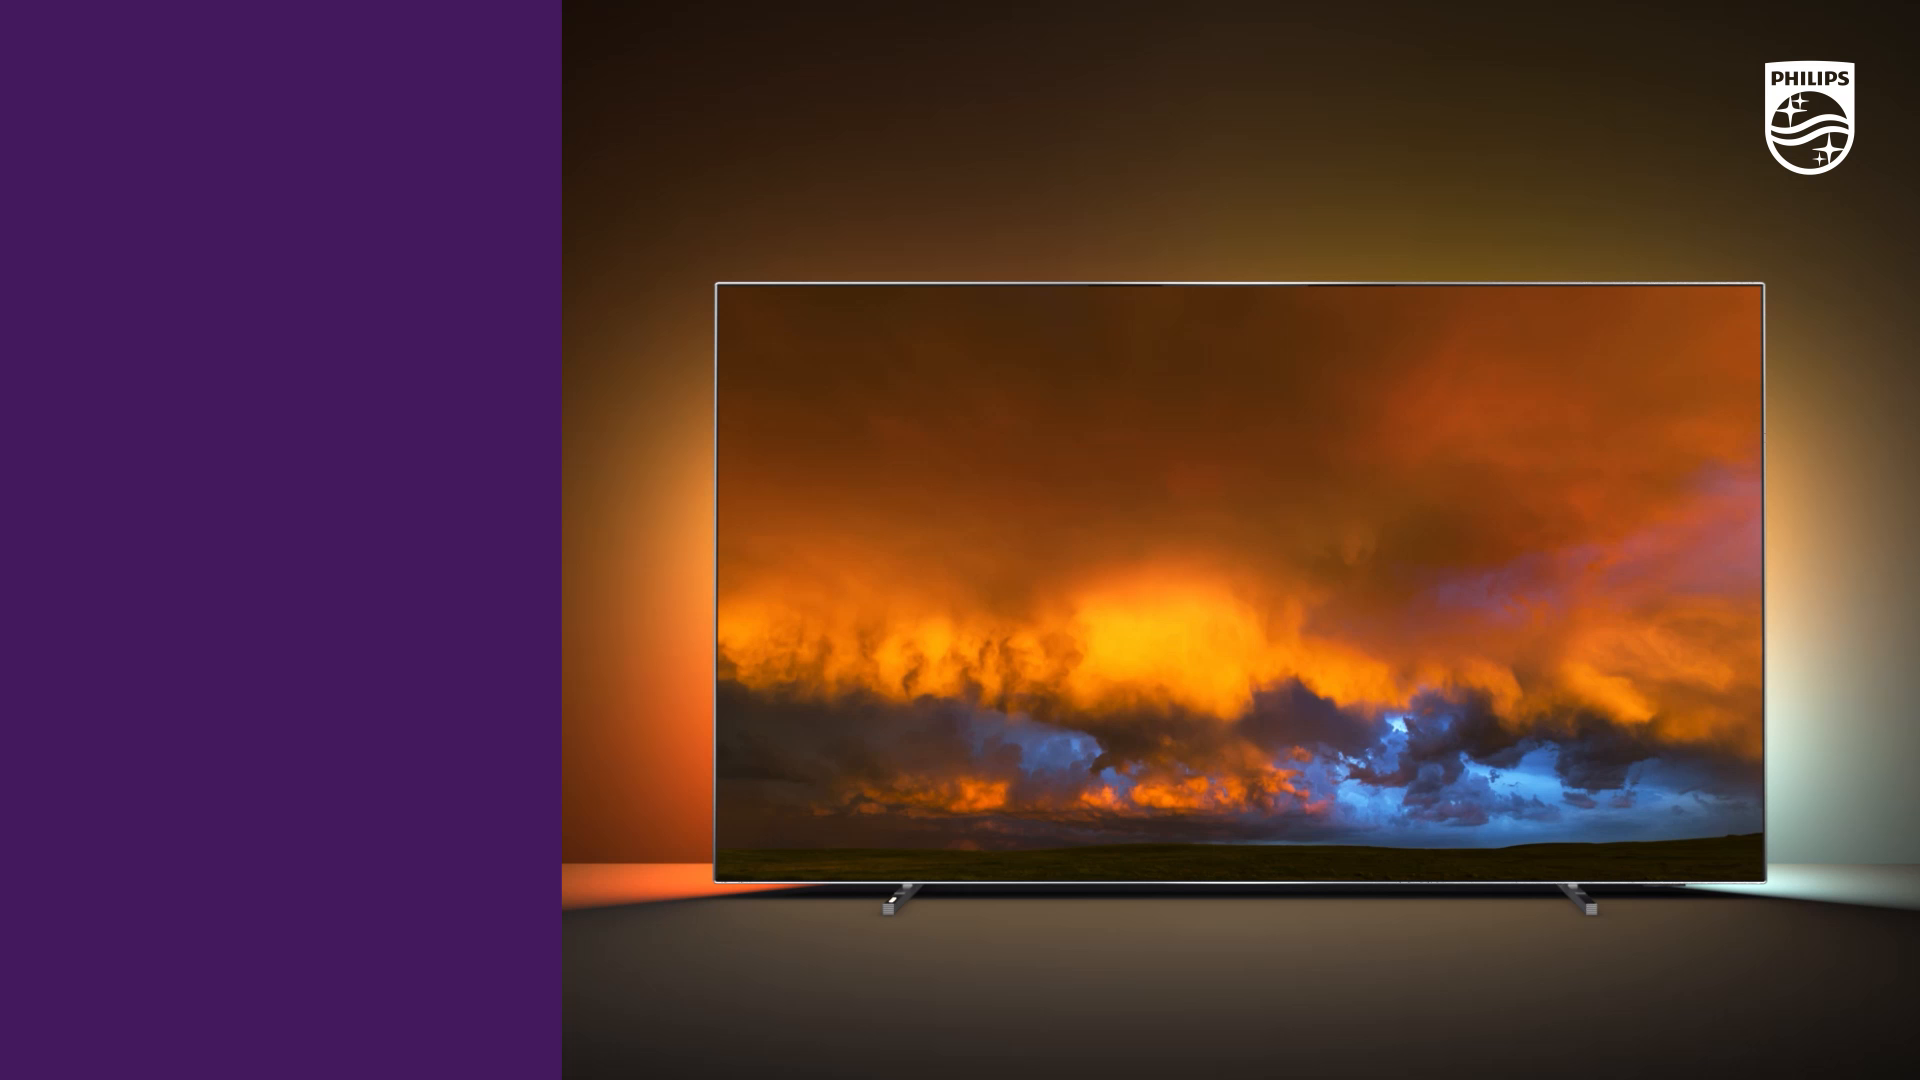 Philips 55OLED804/12 Televisor Smart TV OLED 4K UHD, 55 pulgadas (Android TV, Ambilight 3 lados, HDR10+, Dolby Vision, P5 Perfect Picture Engine, Google Assistant, Compatible con Alexa): Amazon.es: Electrónica